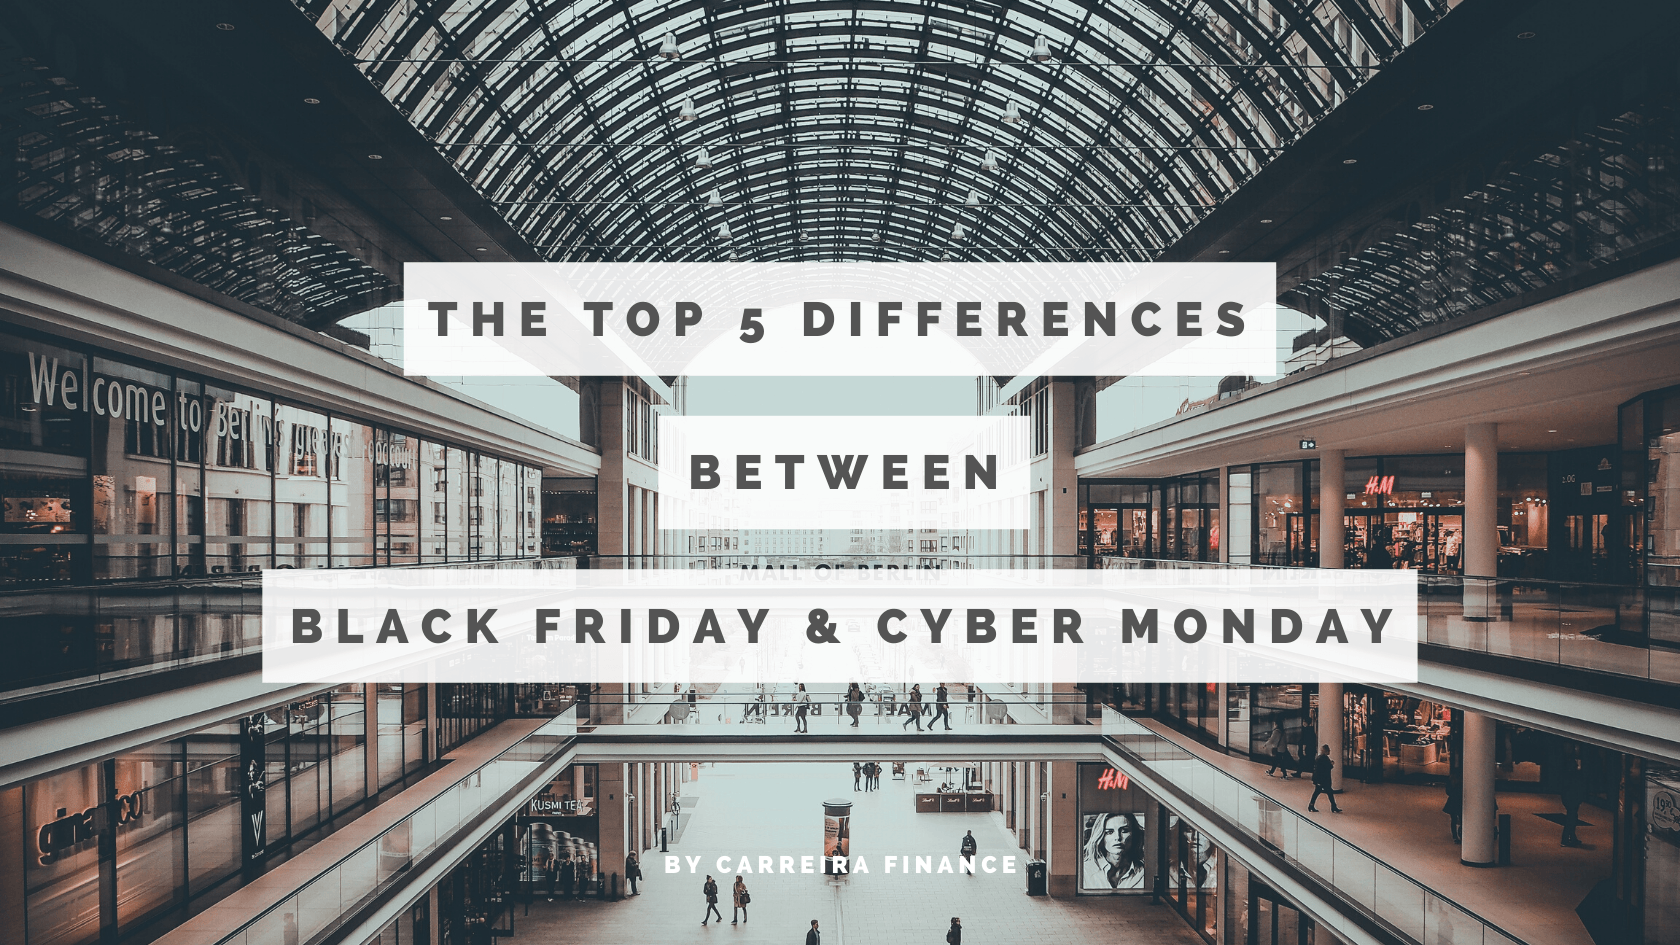 The Top 5 Differences Between Black Friday vs Cyber Monday - Carreira Finance